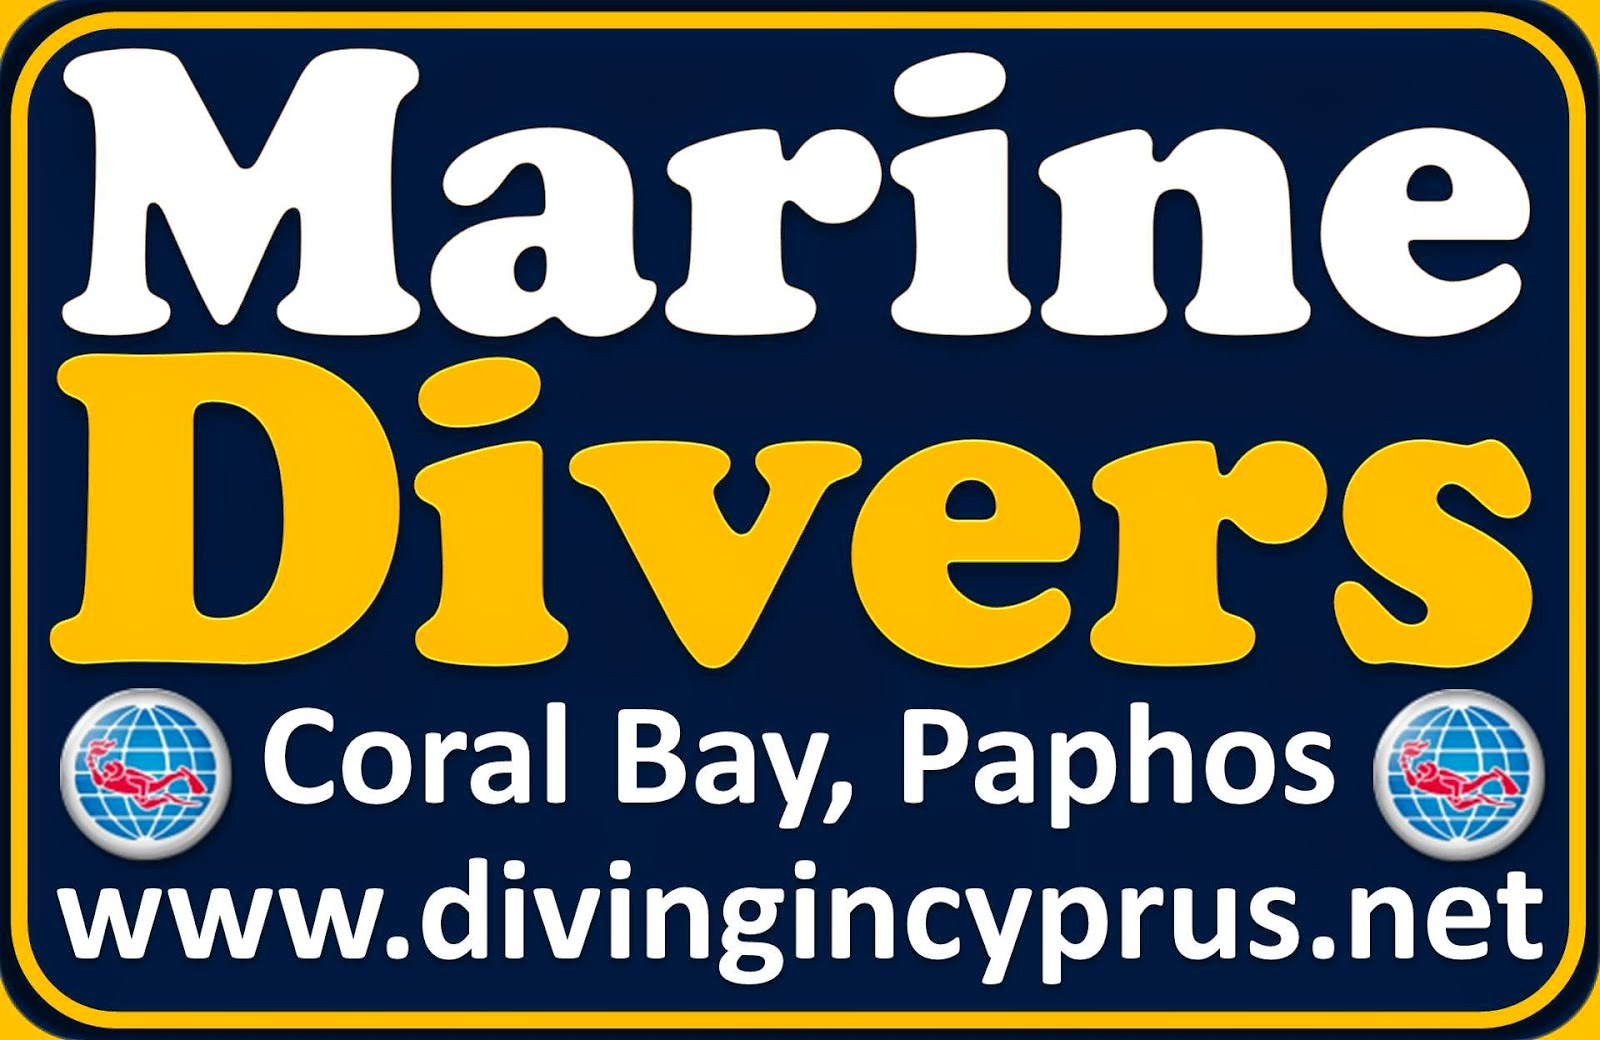 Scuba Diving In Cyprus, Paphos and Coral Bay